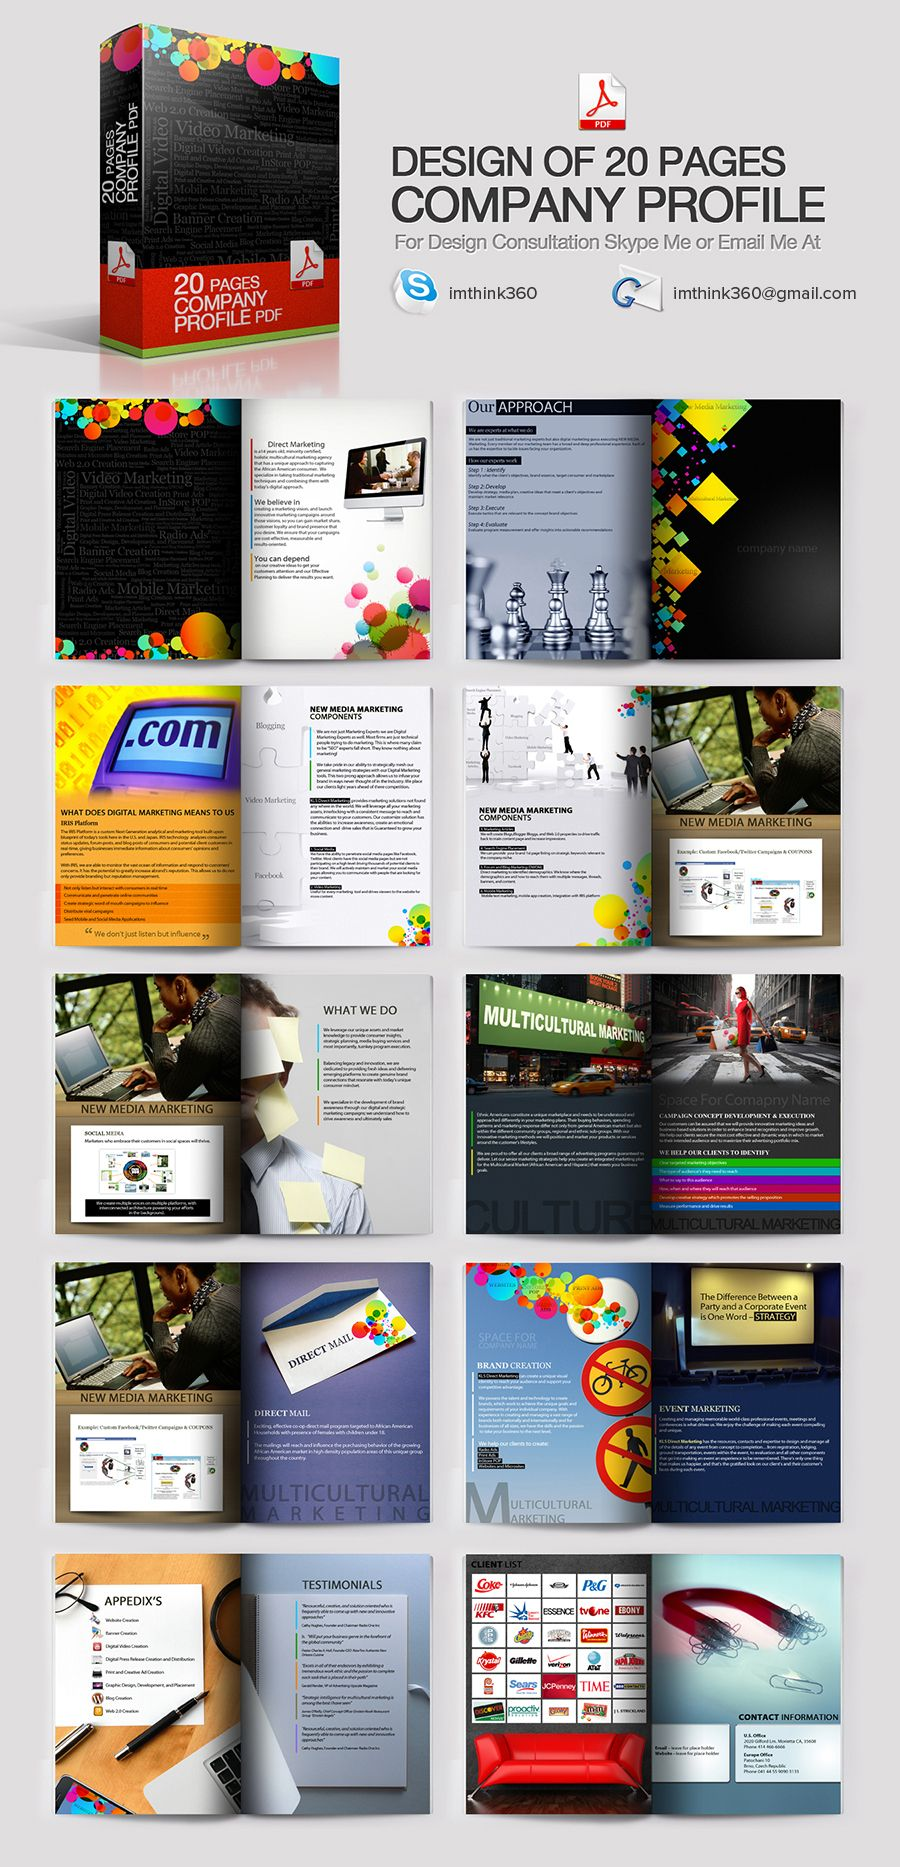 Think 360 Has Made Creative Company Profile Design India Company Infographics Pdfs Graphic Design Illustration And Photograph For Corporate It Companies